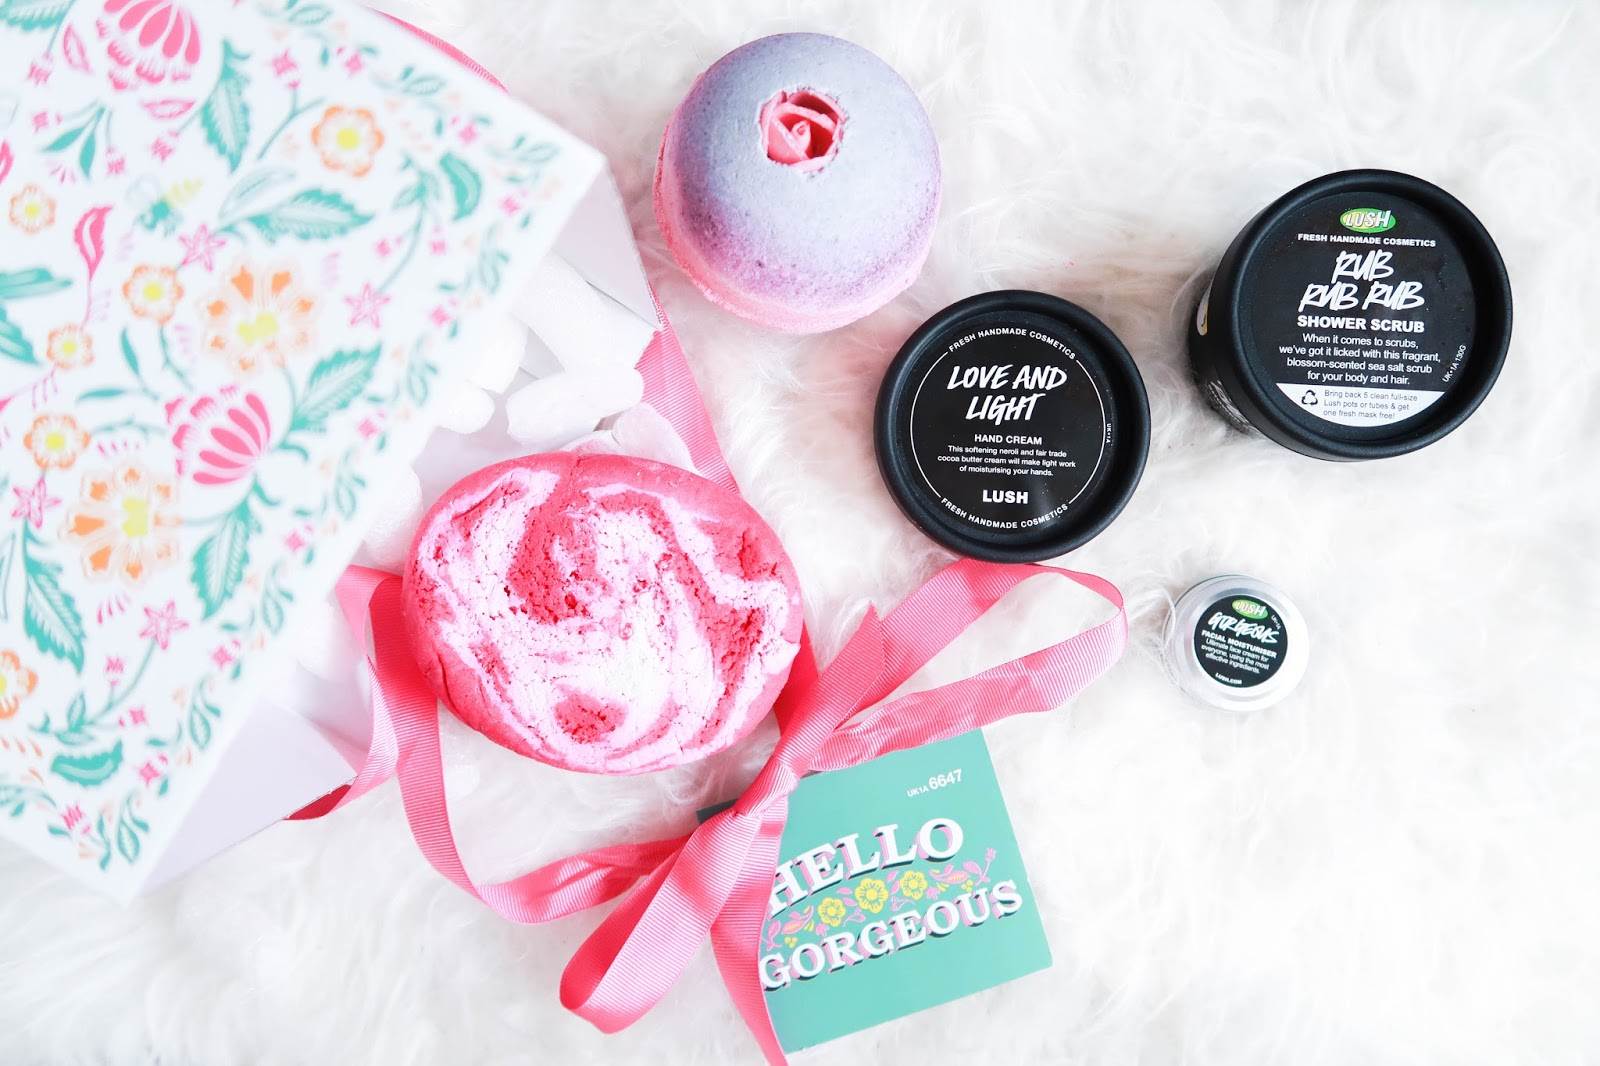 Lush Hello Gorgeous review